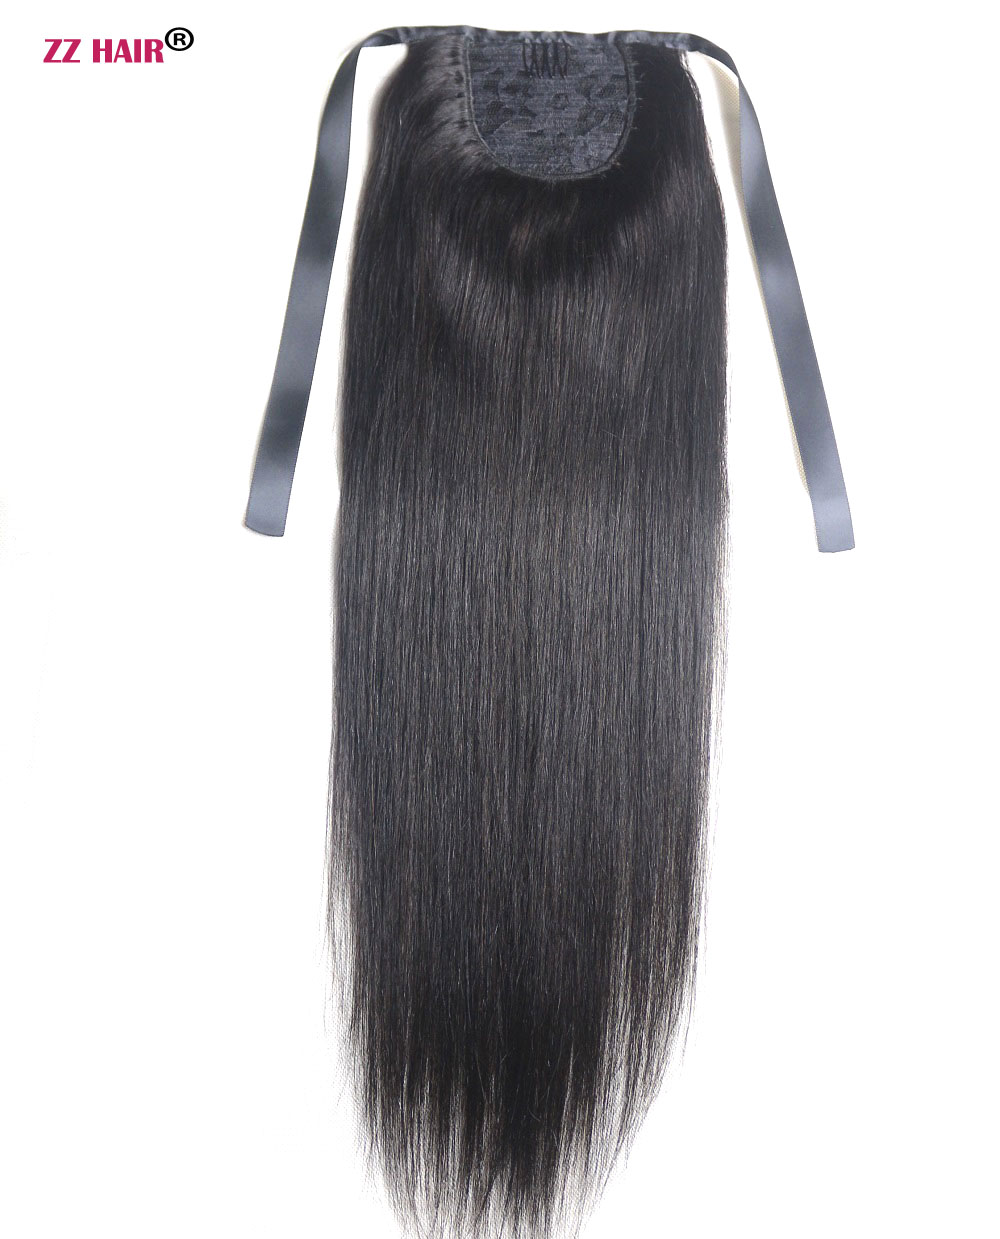 ZZHAIR 100g 16-26 Machine Made Remy Hair Ribbon Ponytail Clips-in Human Hair Extensions Horsetail Natural Straight Hair ...